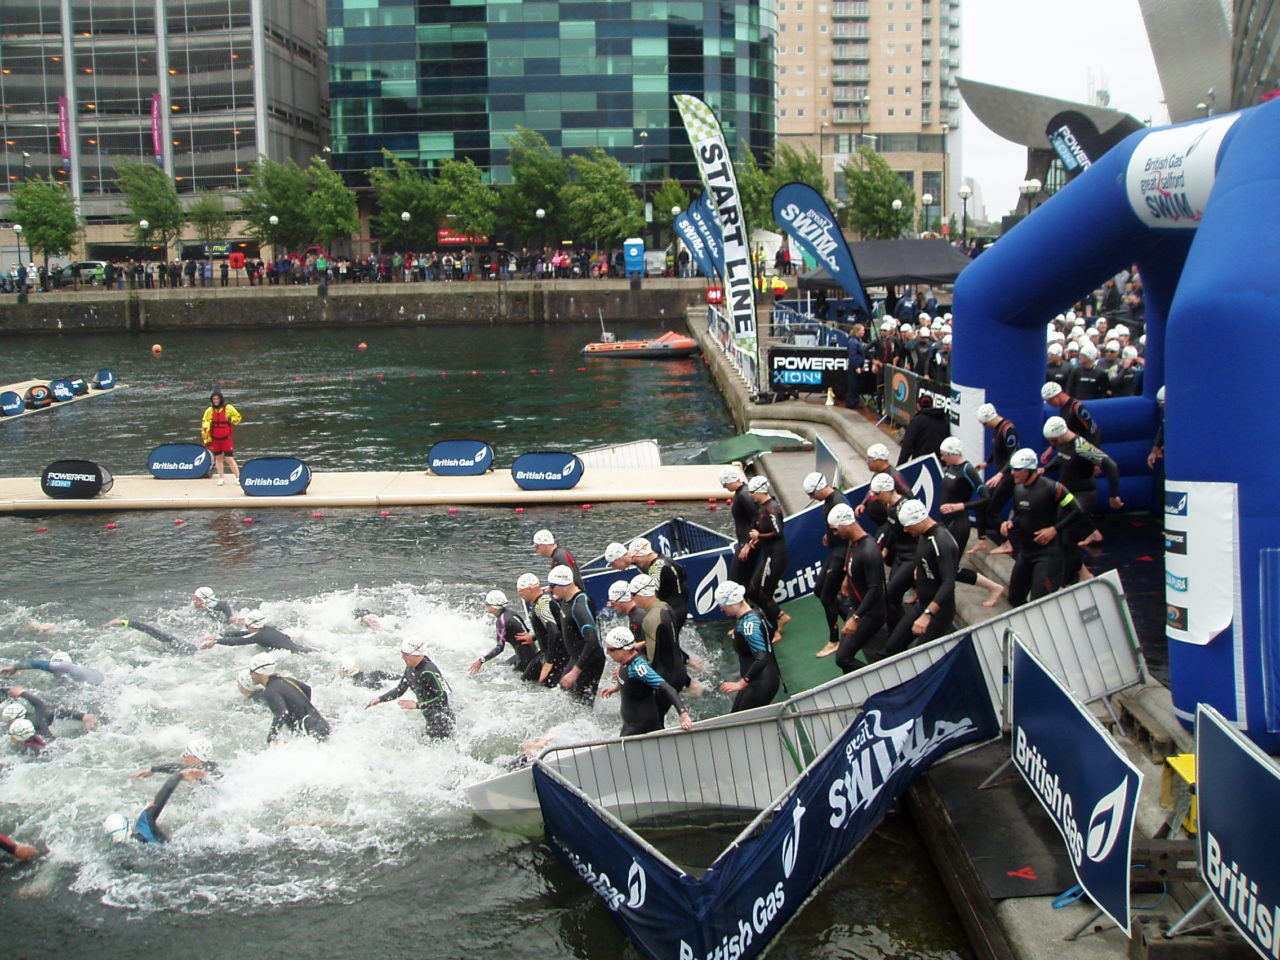 open_water_swimming_race_salford_quays_start